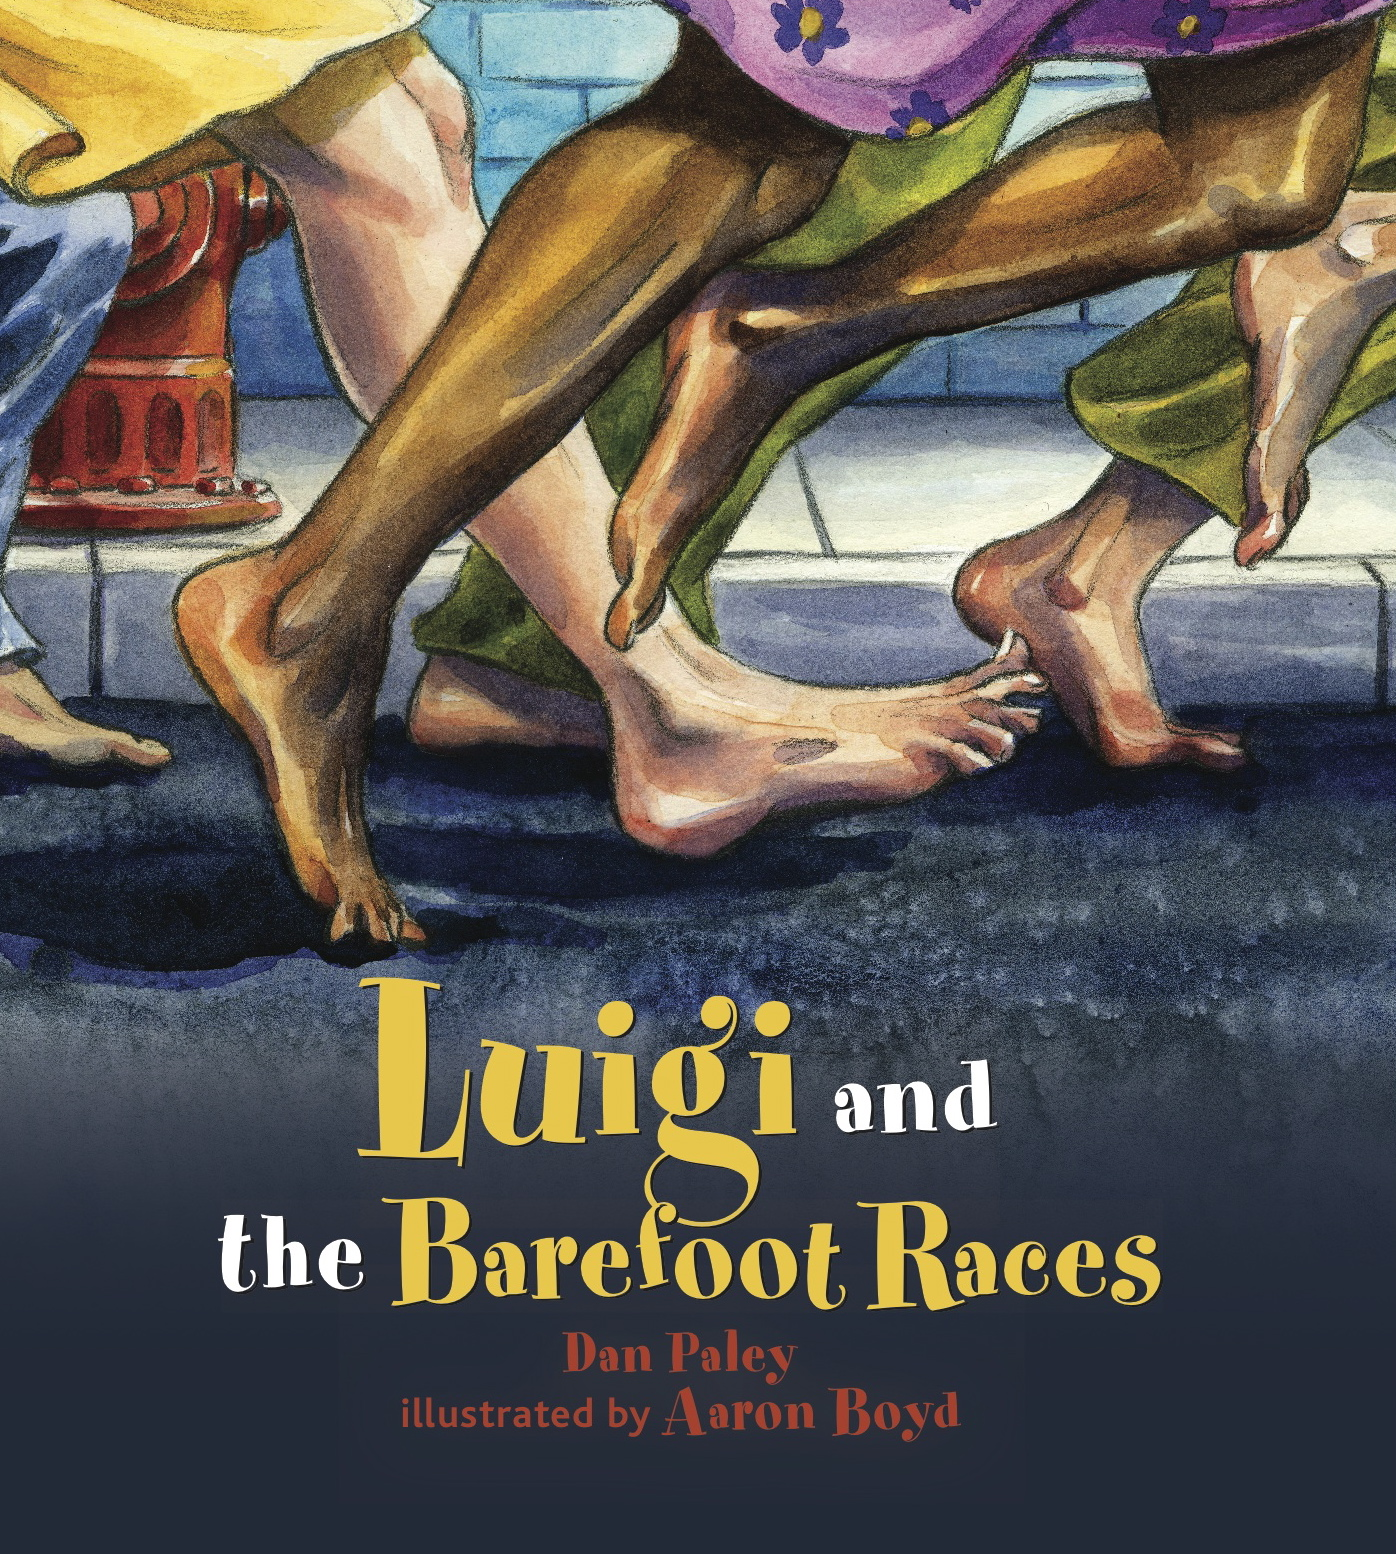 Luigi and the Barefoot Races